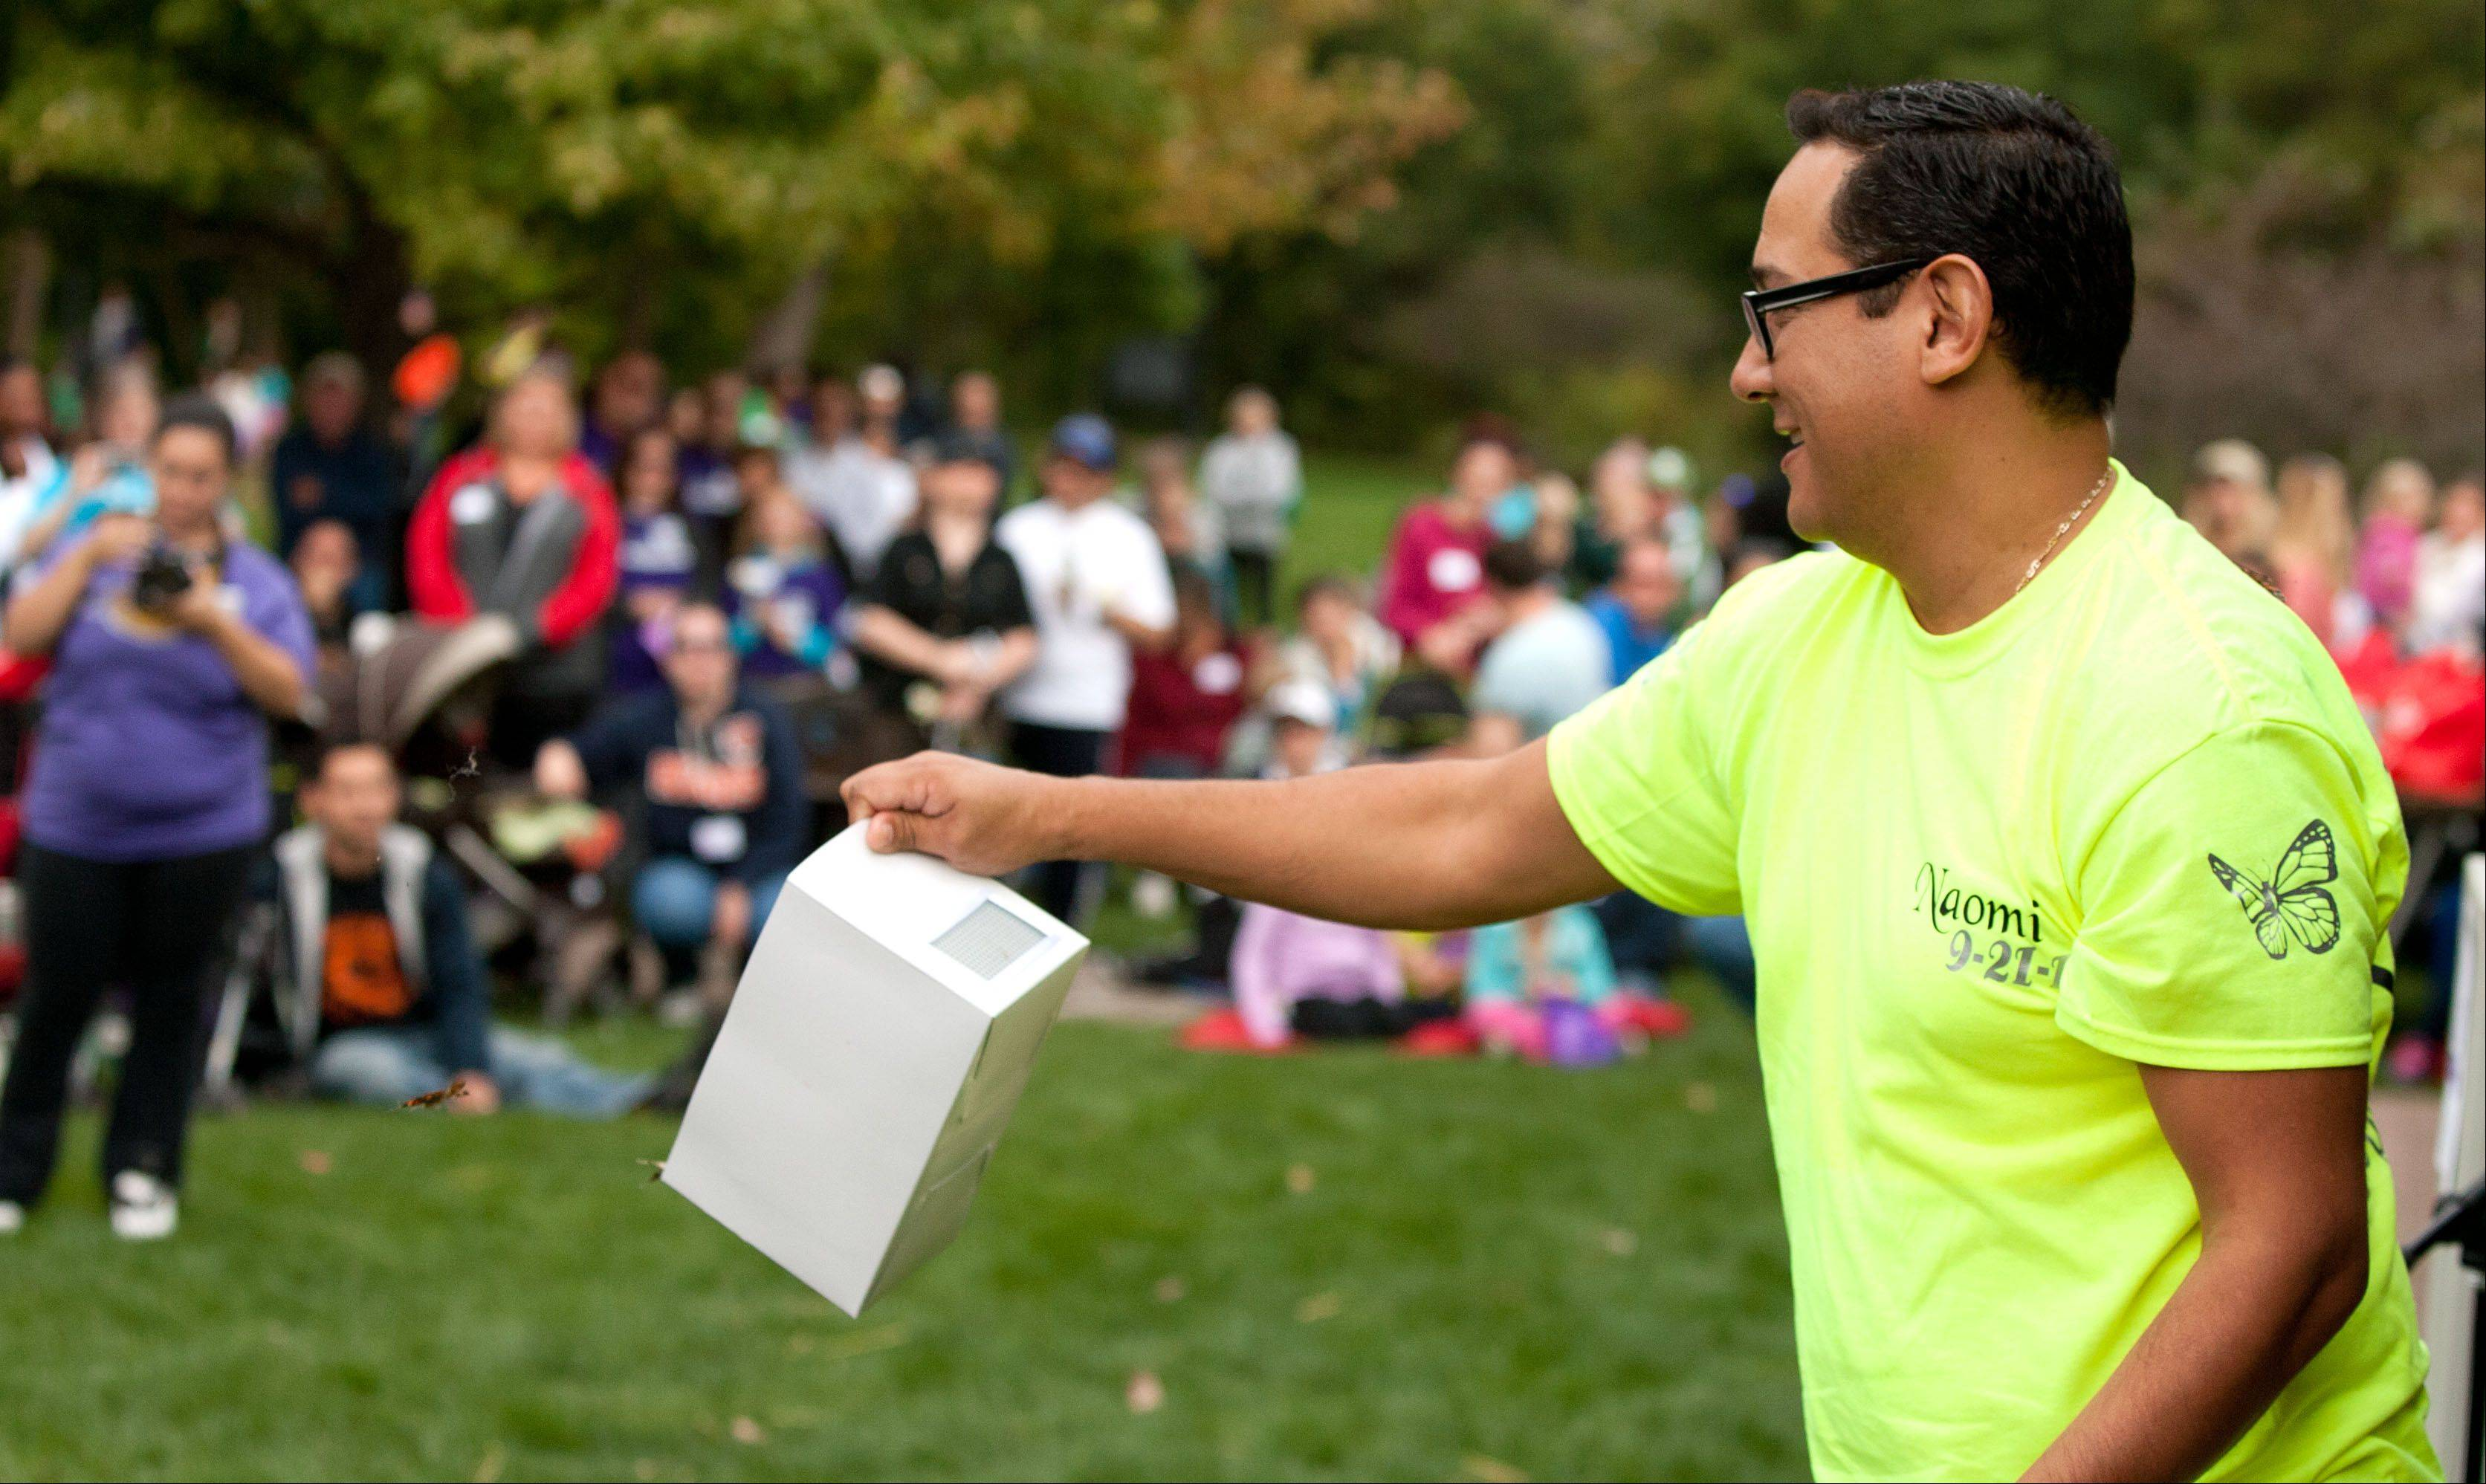 Jeff Garcia of Chicago releases butterflies during Naperville's ninth annual A Walk to Remember held at the Riverwalk Grand Pavilion. The walk benefits the Edward Foundation SHARE program.